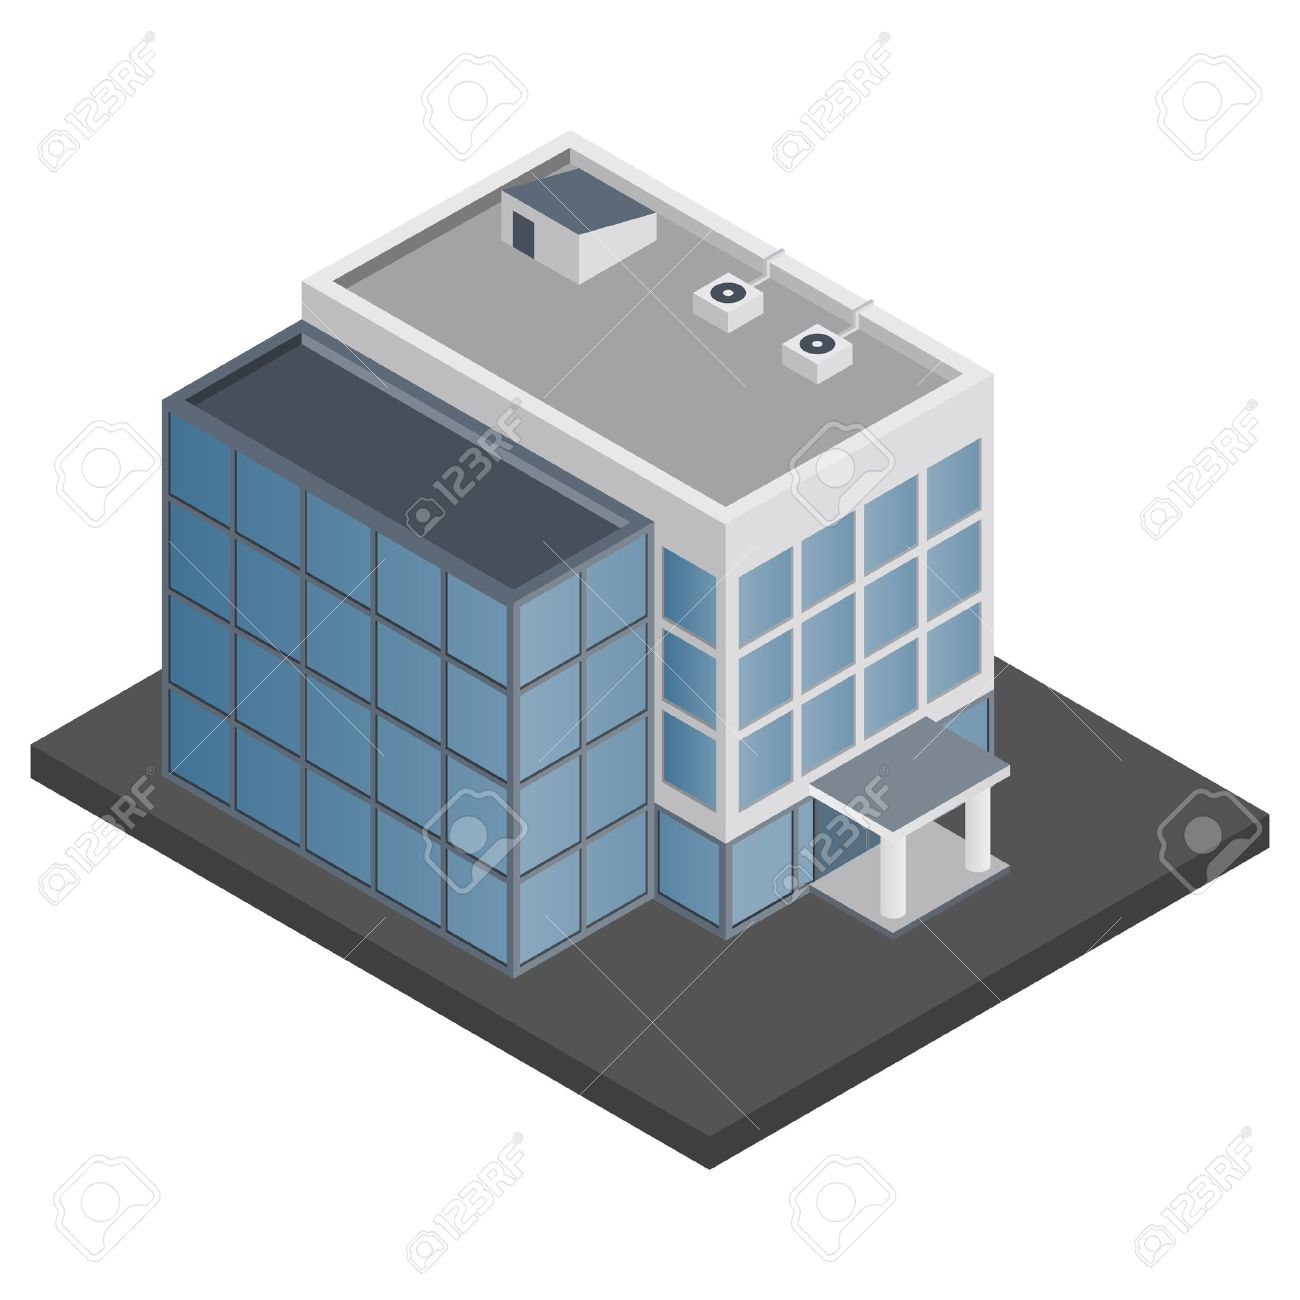 643 Office Building free clipart.